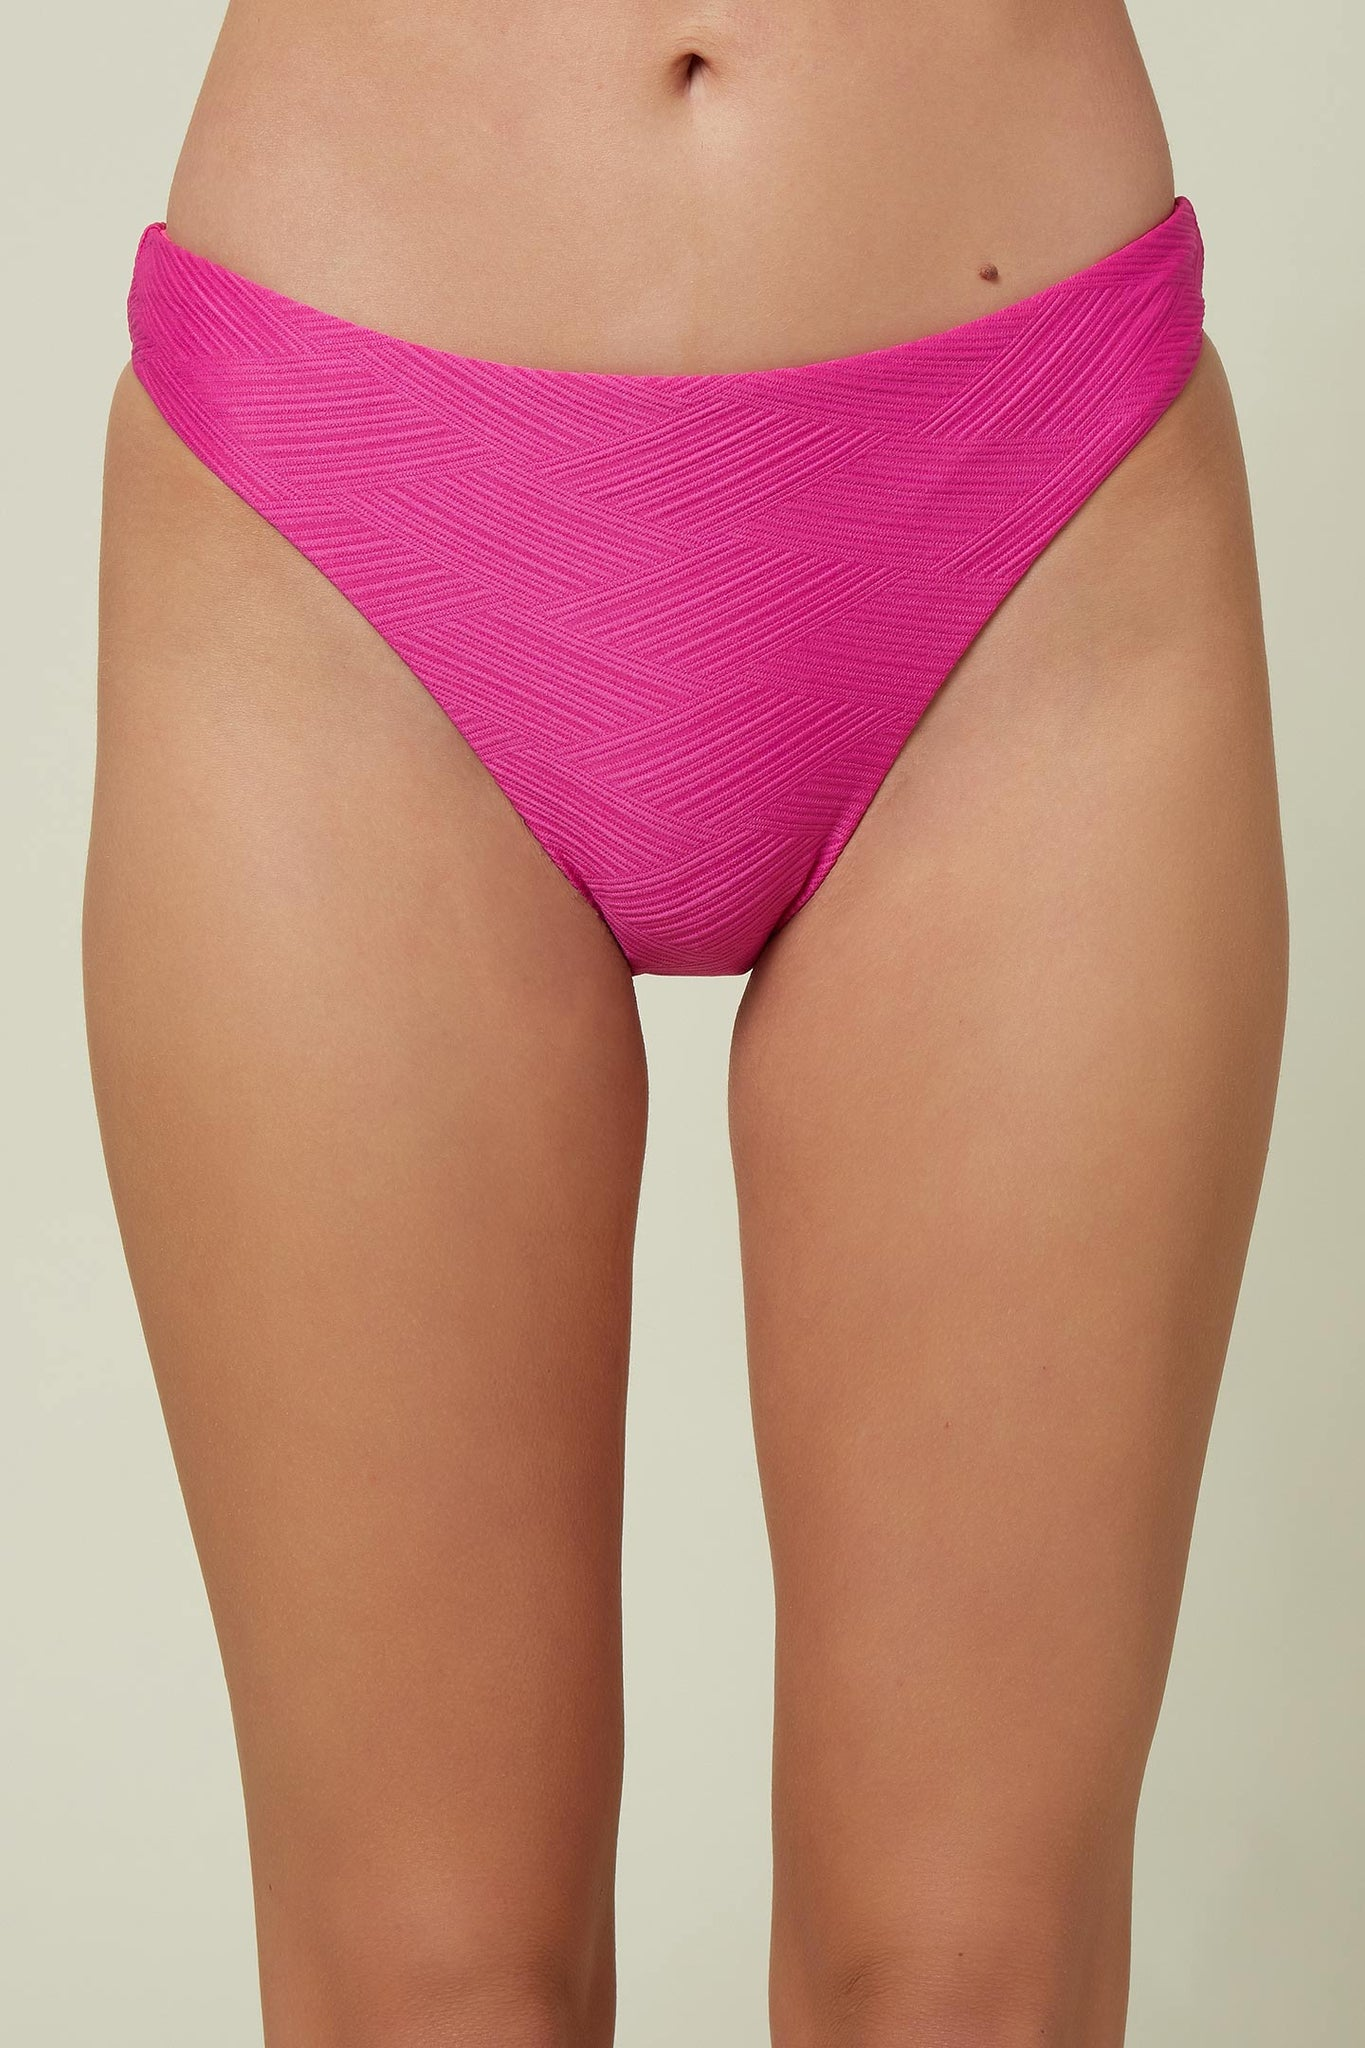 Saltwater Solids Textured Hi-Leg Bottoms - Neon Pink | O'Neill